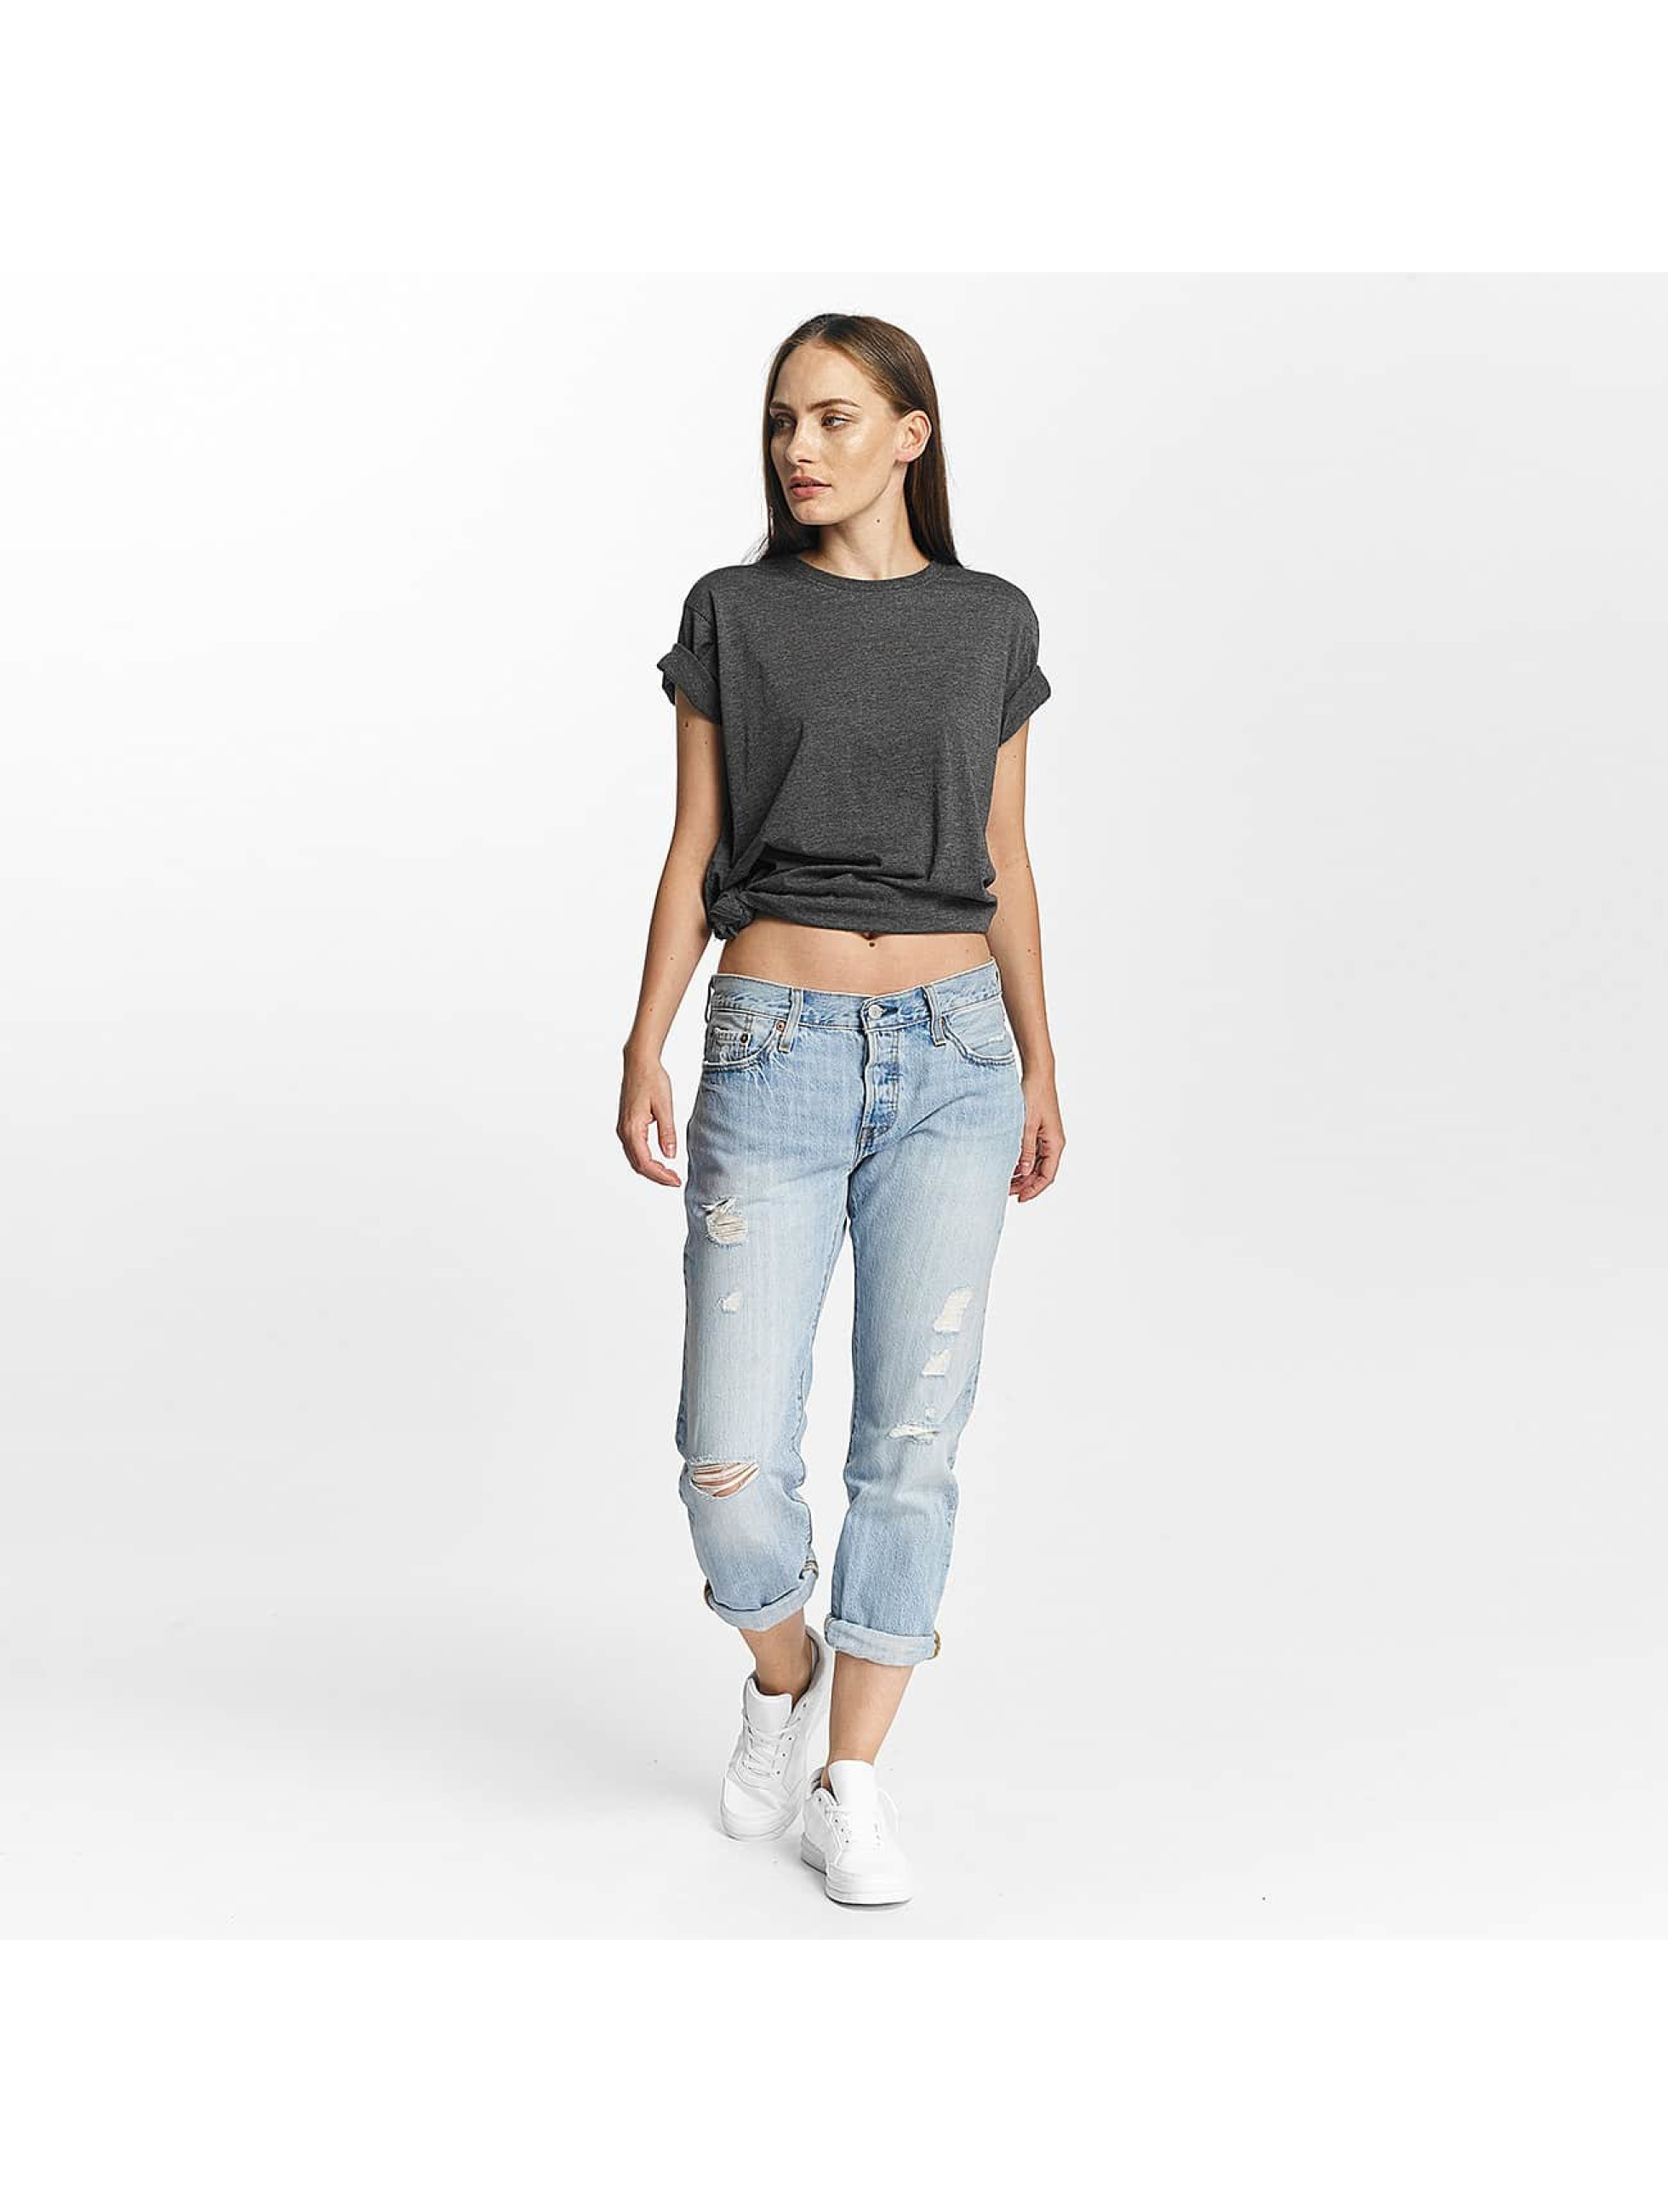 Cyprime T-Shirt Basic Organic Cotton Oversized grau